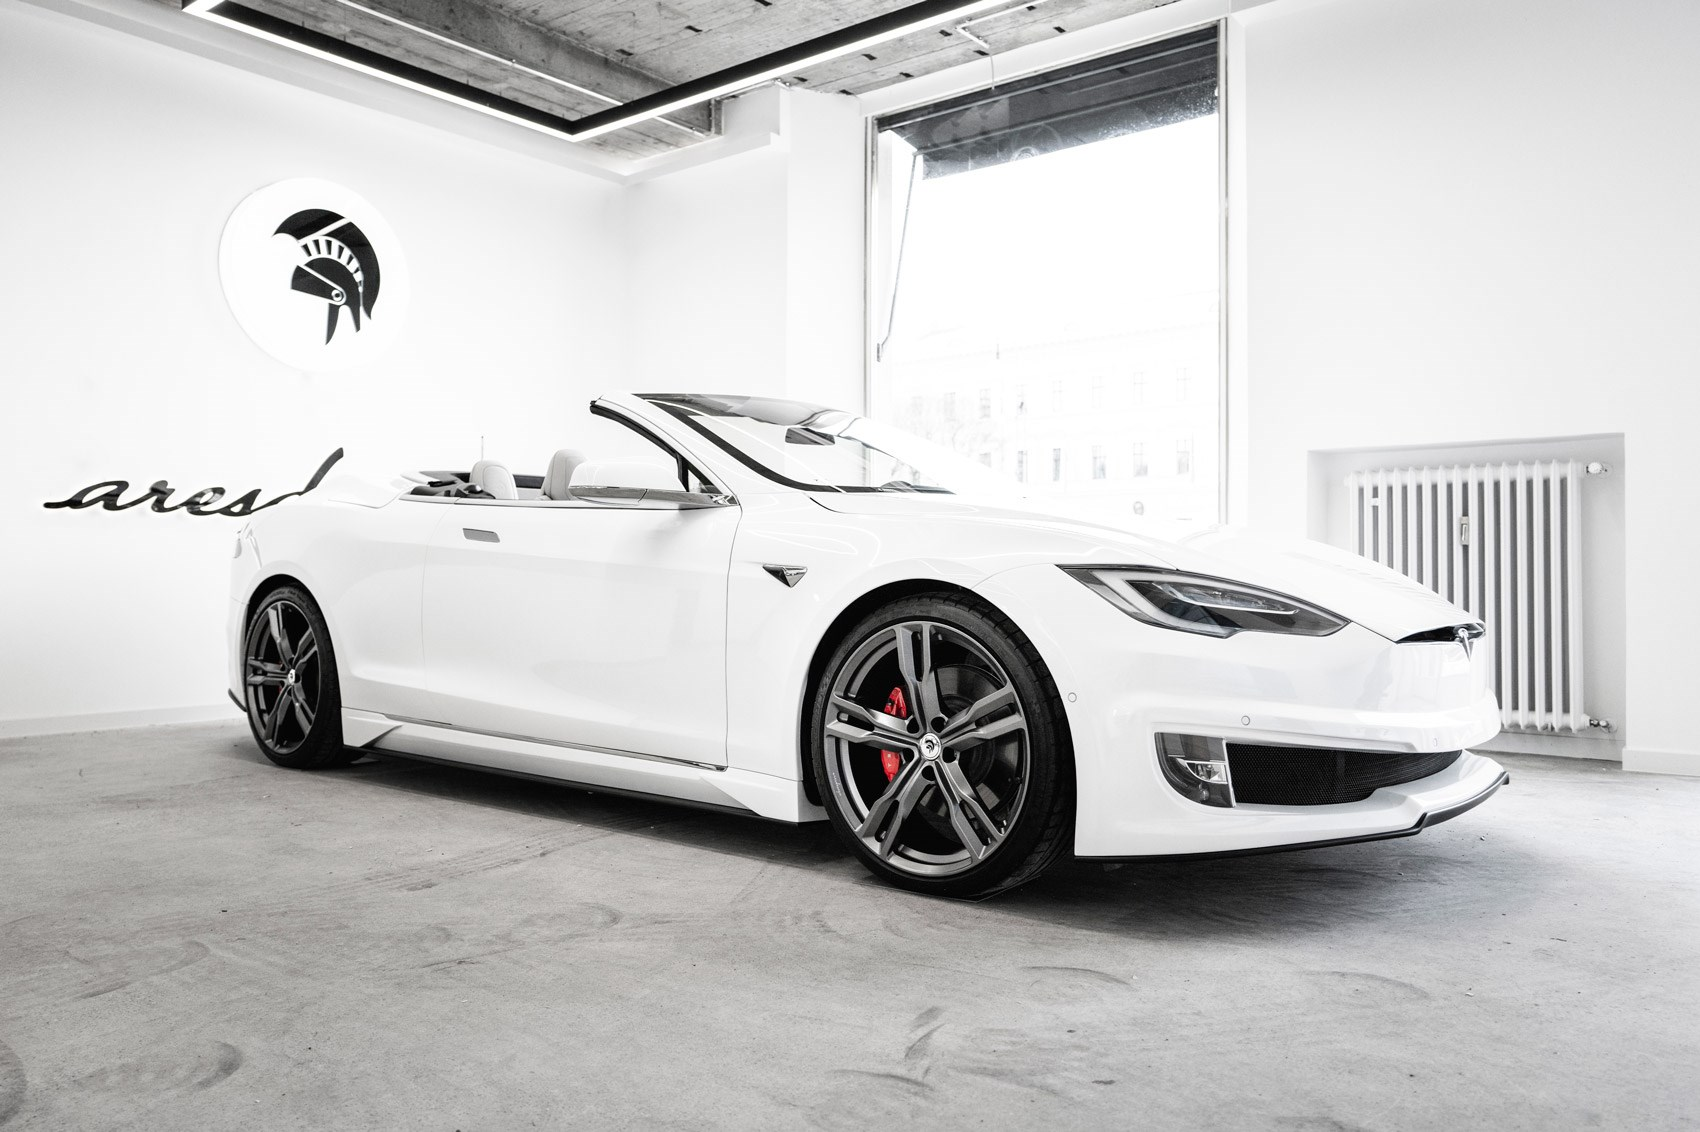 Tesla Model S: Coachbuilt convertible by ARES showcased